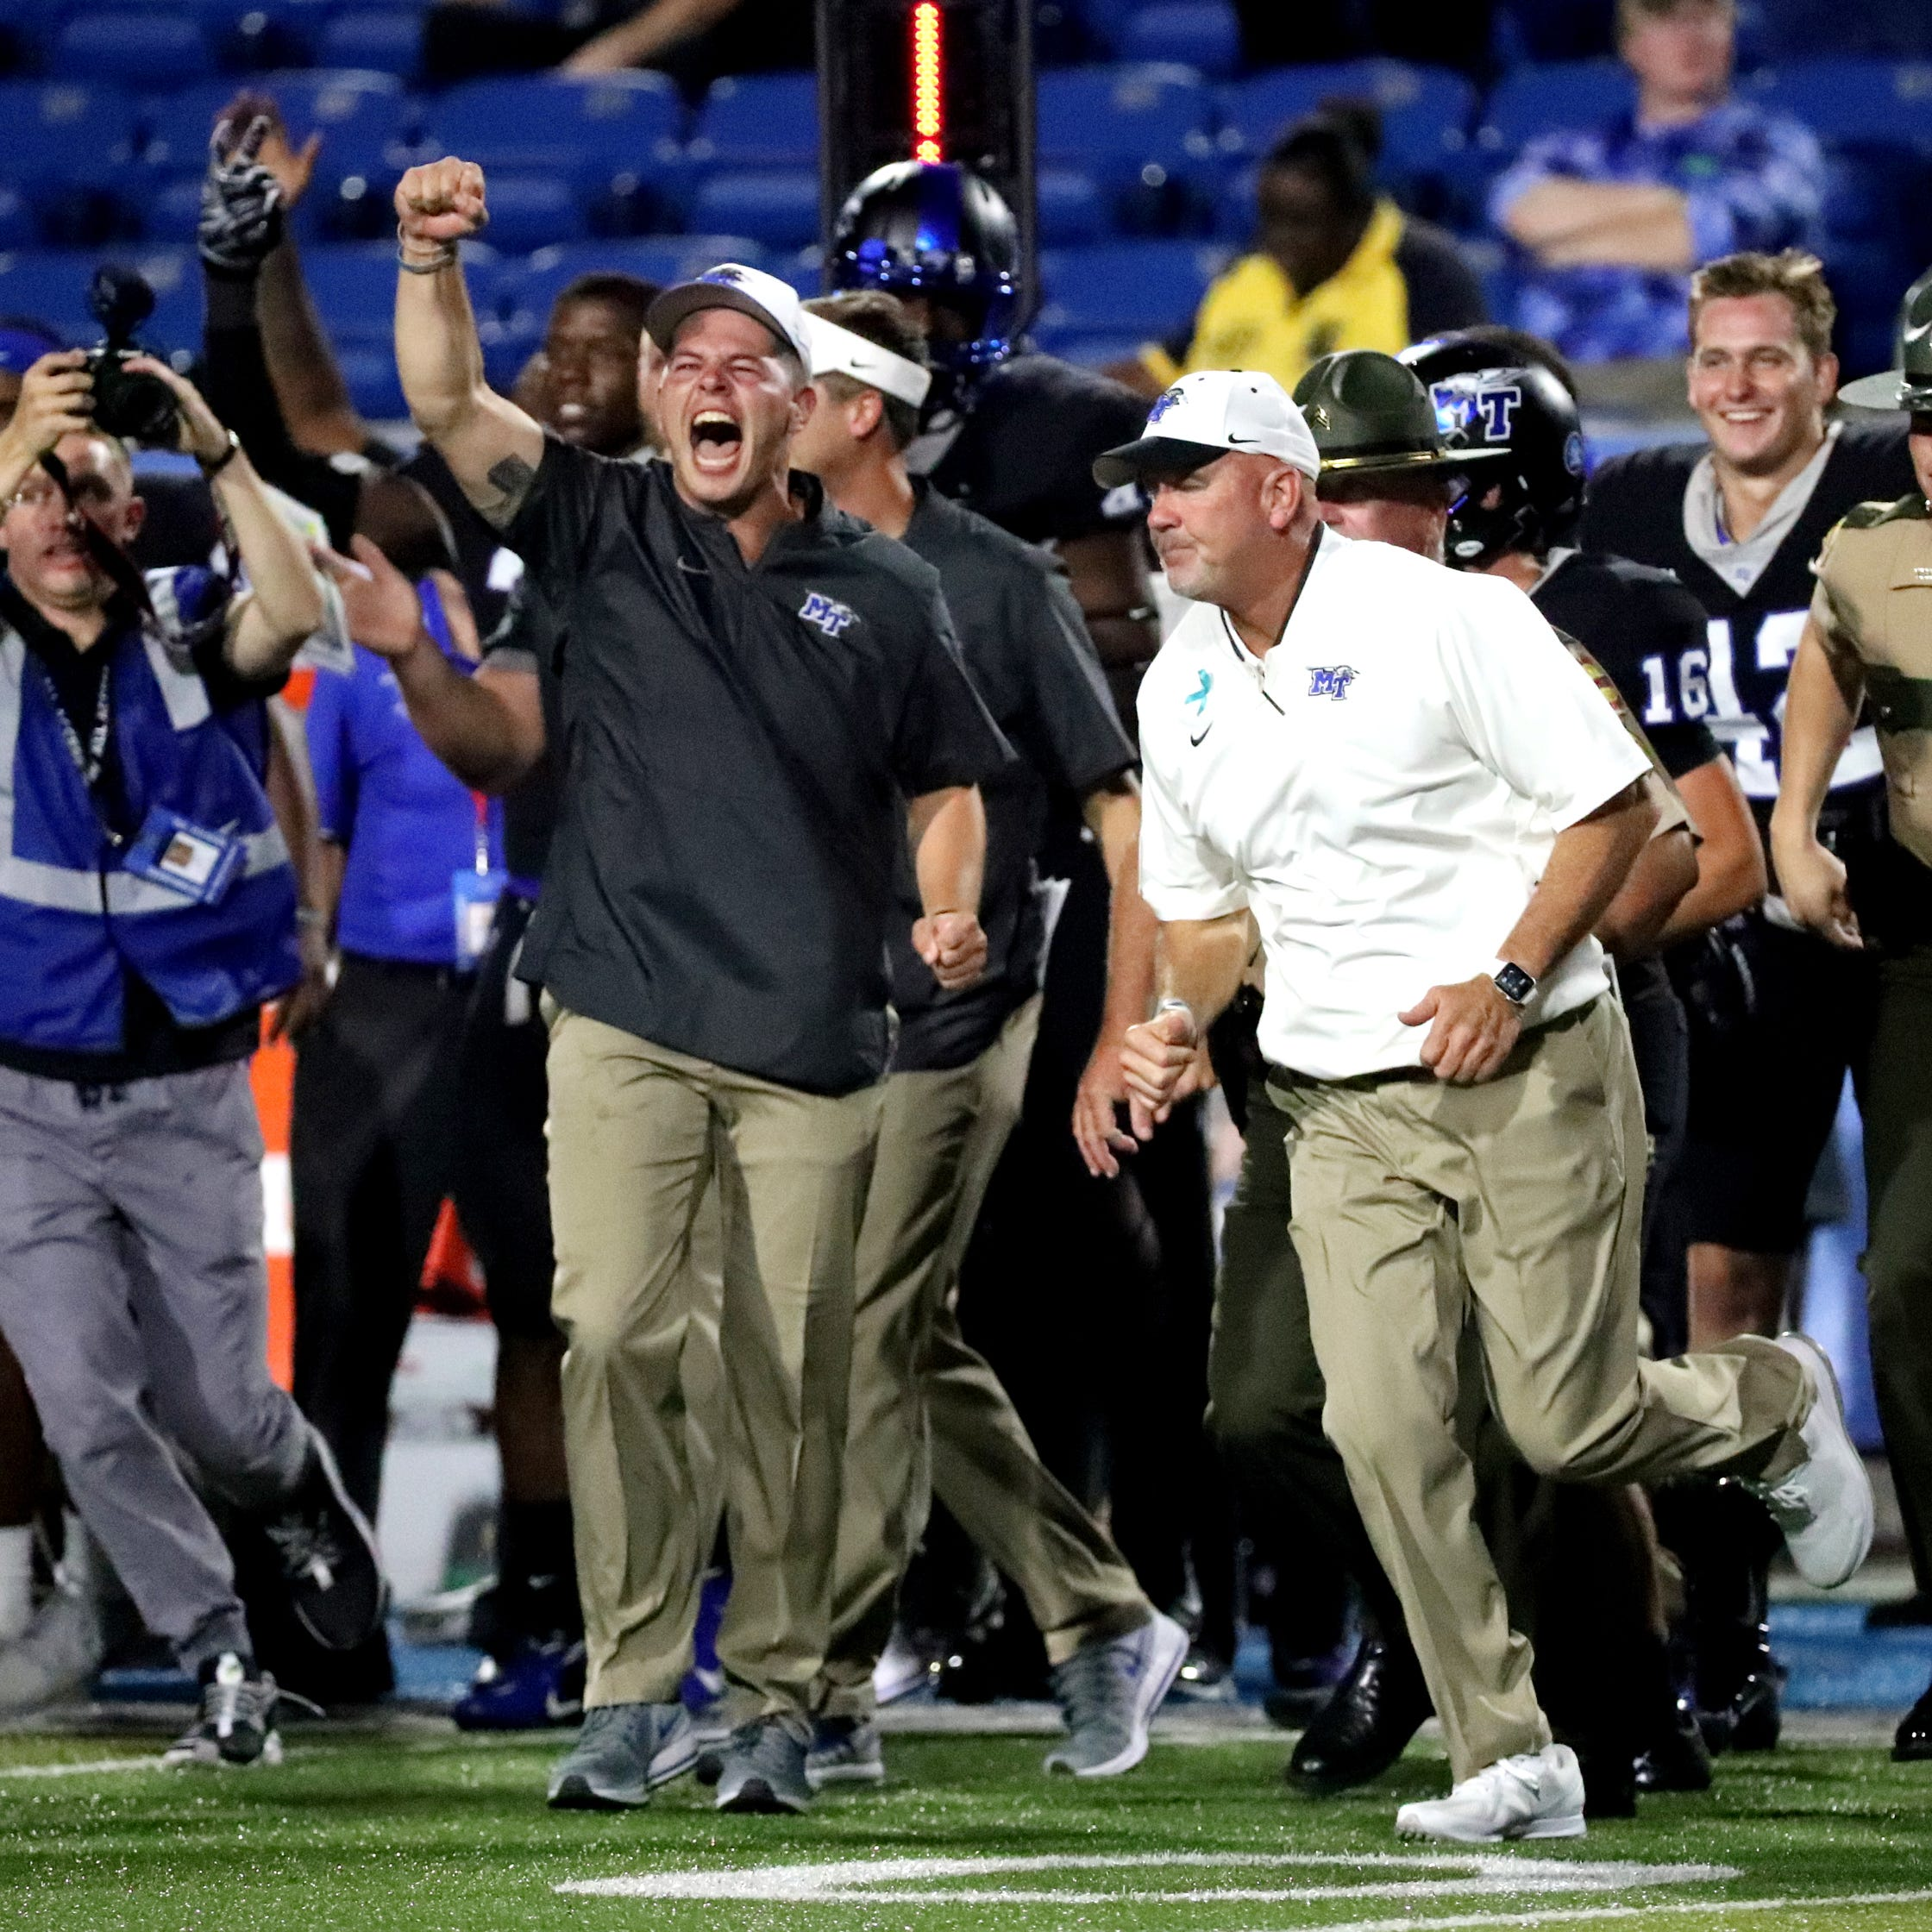 Watch MTSU's two-point conversion that beat Lane Kiffin and FAU